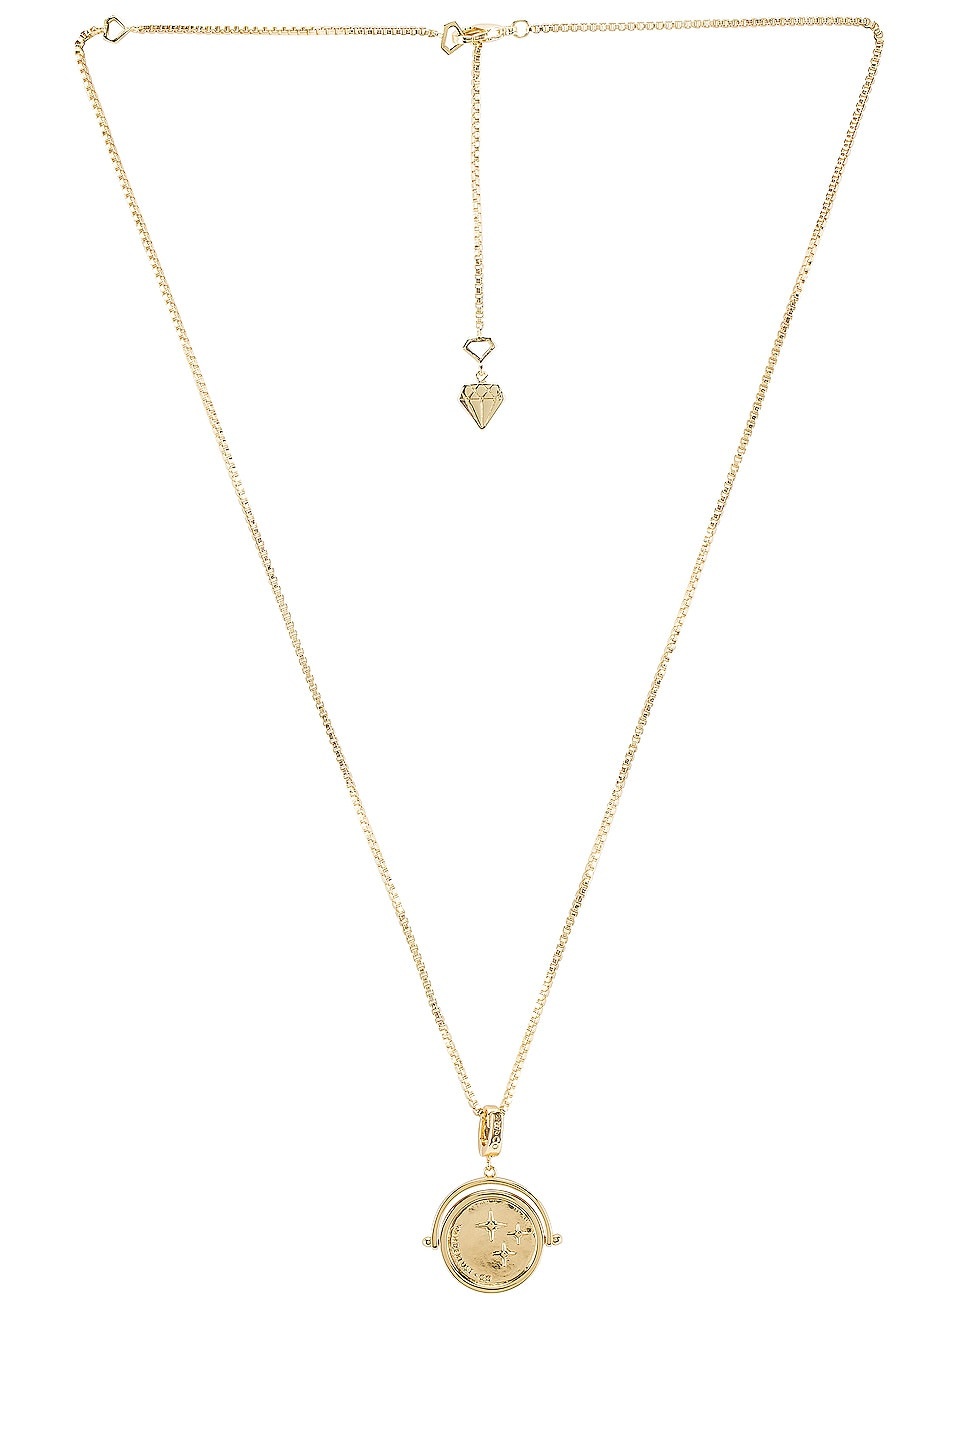 Wanderlust + Co Classic Wanderlust Charm Necklace in Gold